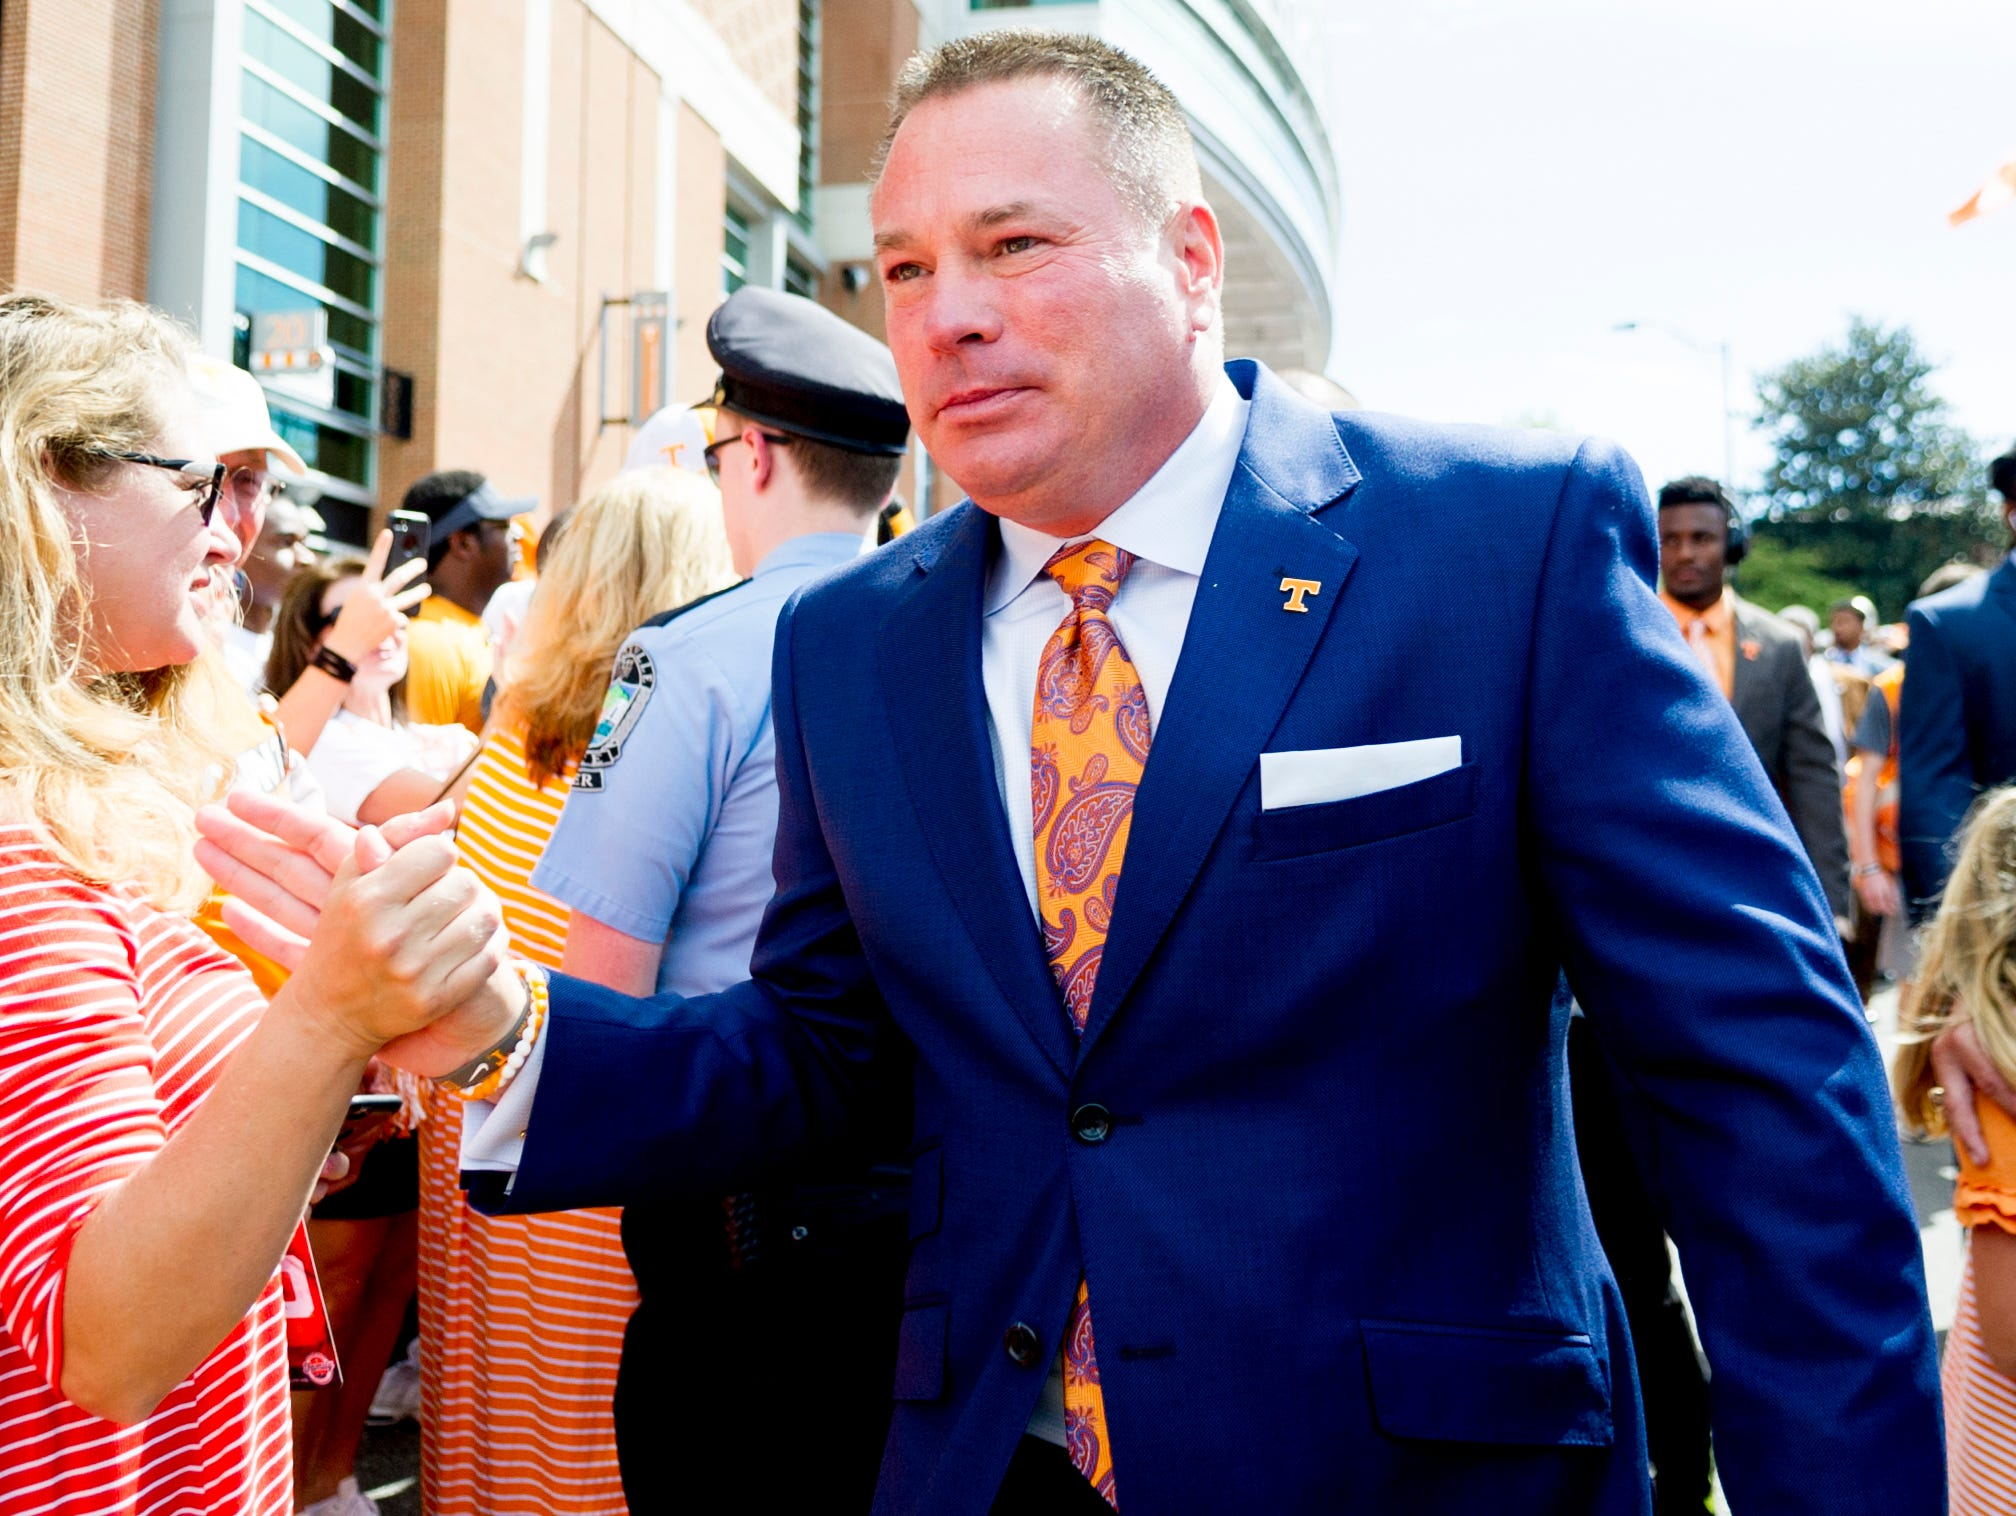 Tennessee Head Coach Butch Jones greets fans during the Vol Walk during the Tennessee Volunteers vs. Georgia Bulldogs game at Neyland Stadium in Knoxville, Tennessee on Saturday, September 30, 2017.